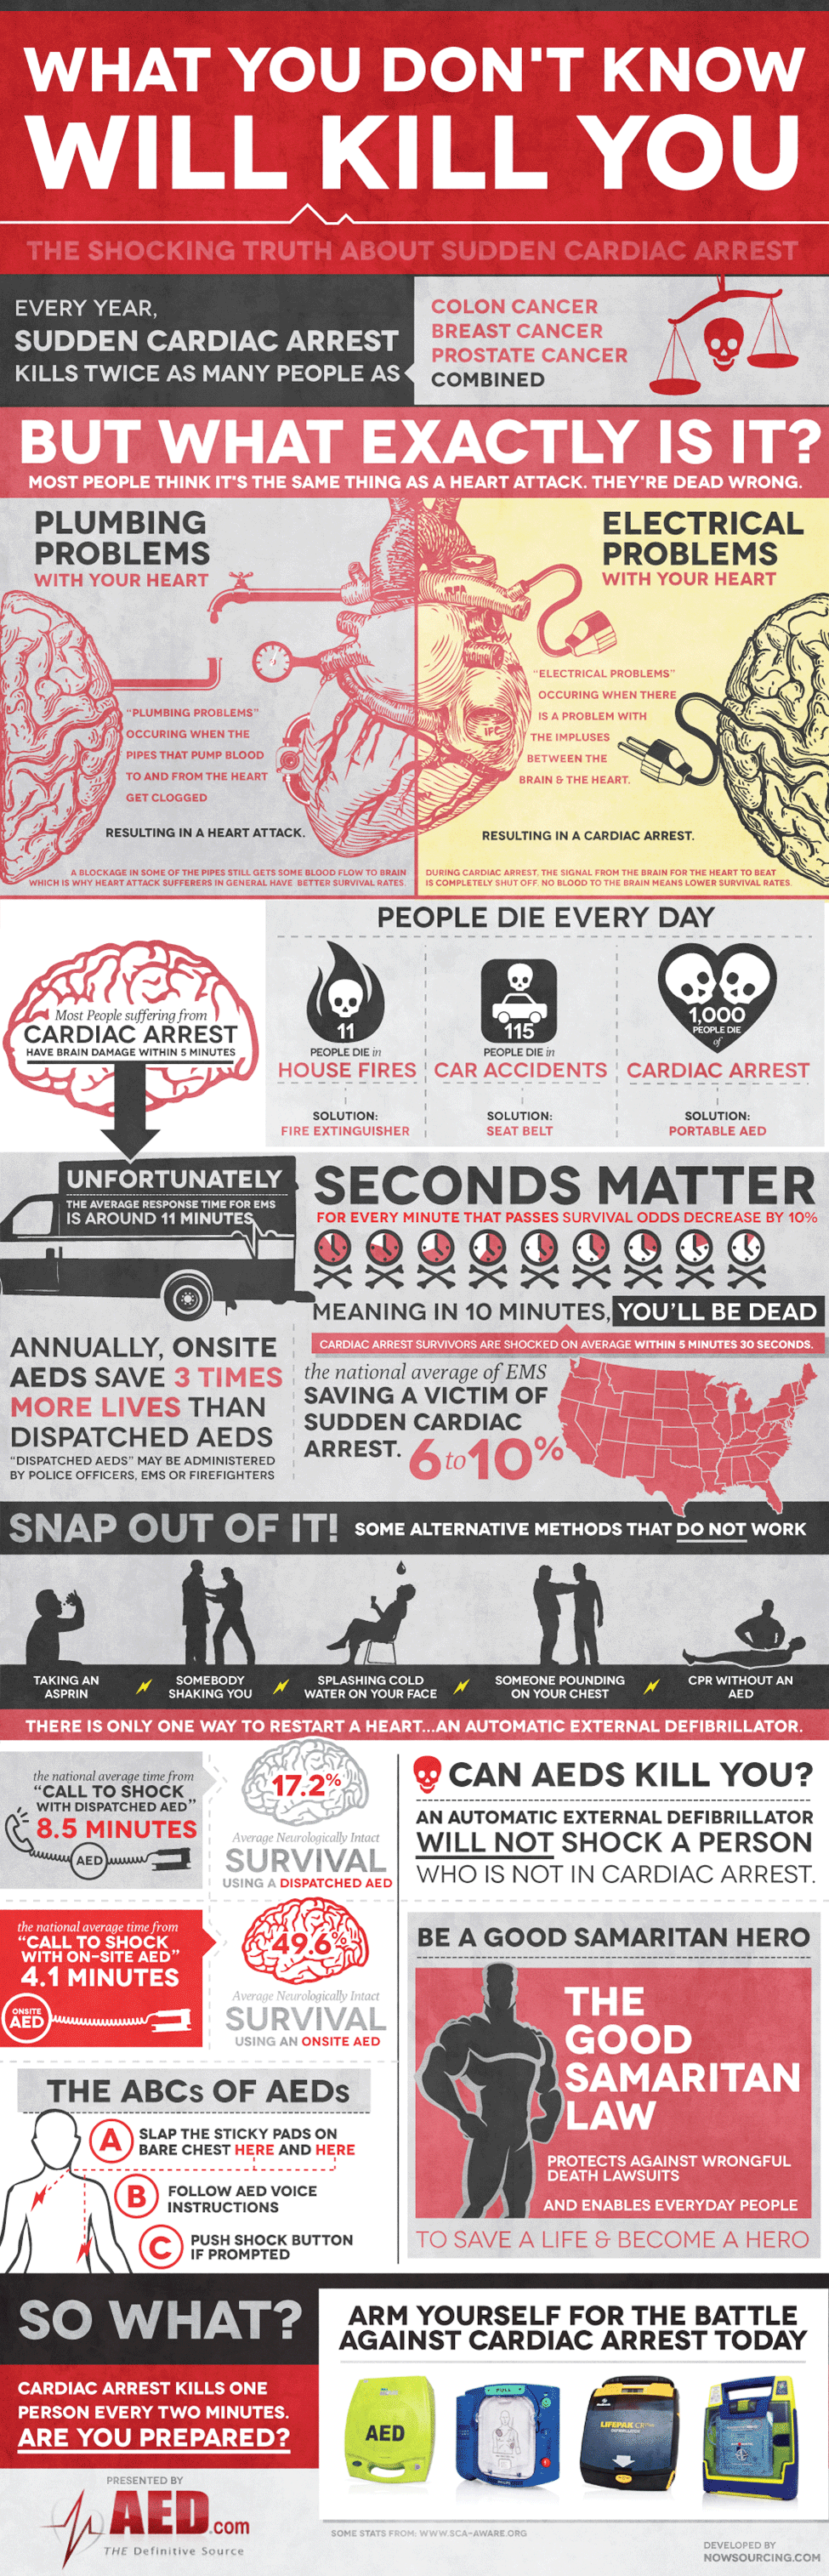 What You Don't Know Will Kill You infographic